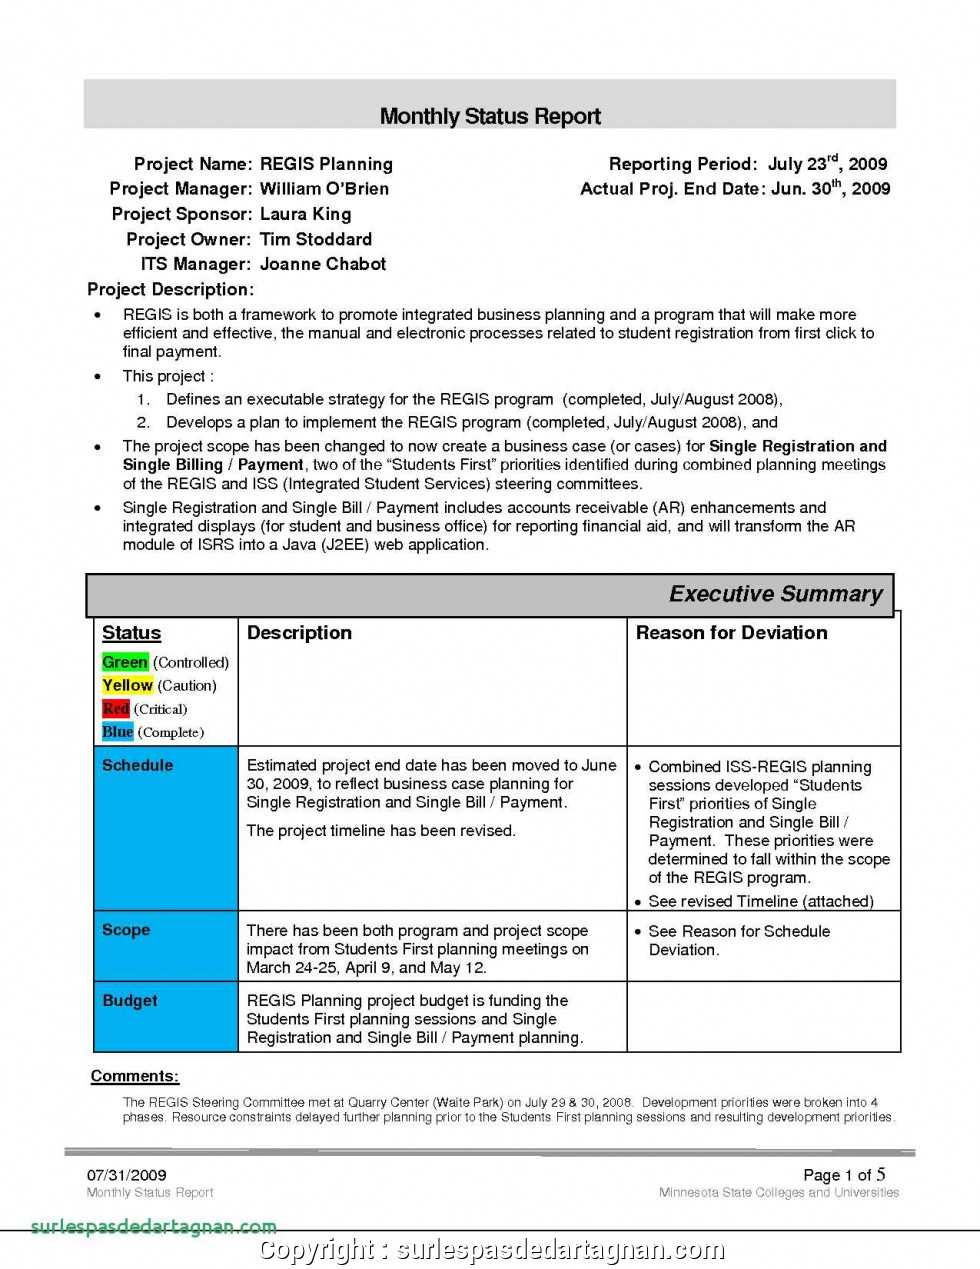 Sales Manager Monthly Report Templates - Atlantaauctionco Regarding Sales Manager Monthly Report Templates